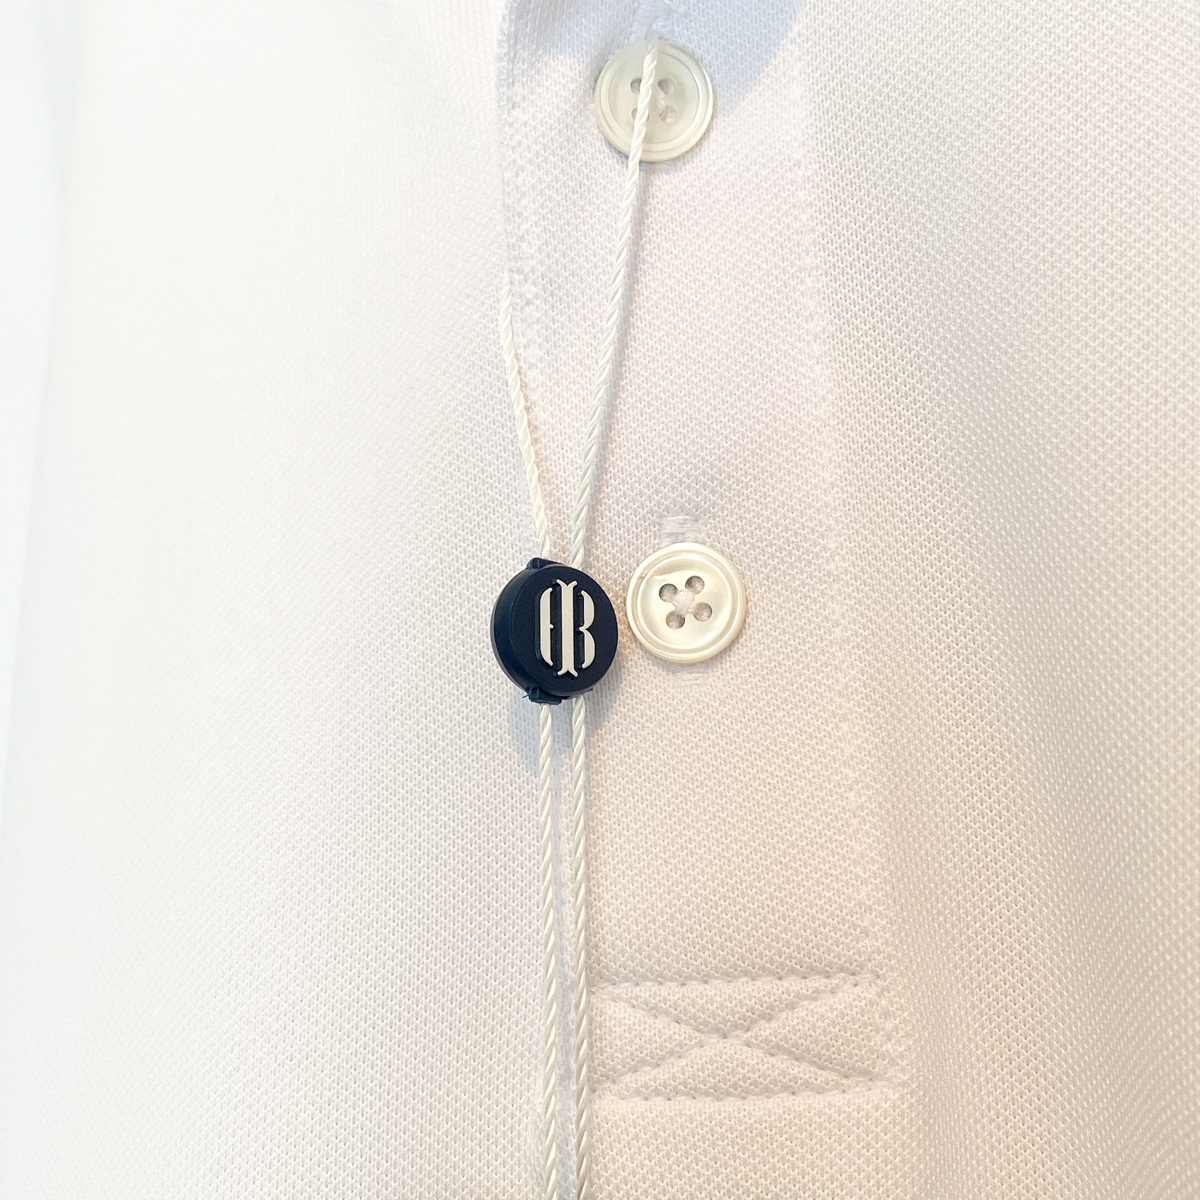 Now Available – the Holderness & Bourne X RCS Member Logo Polo